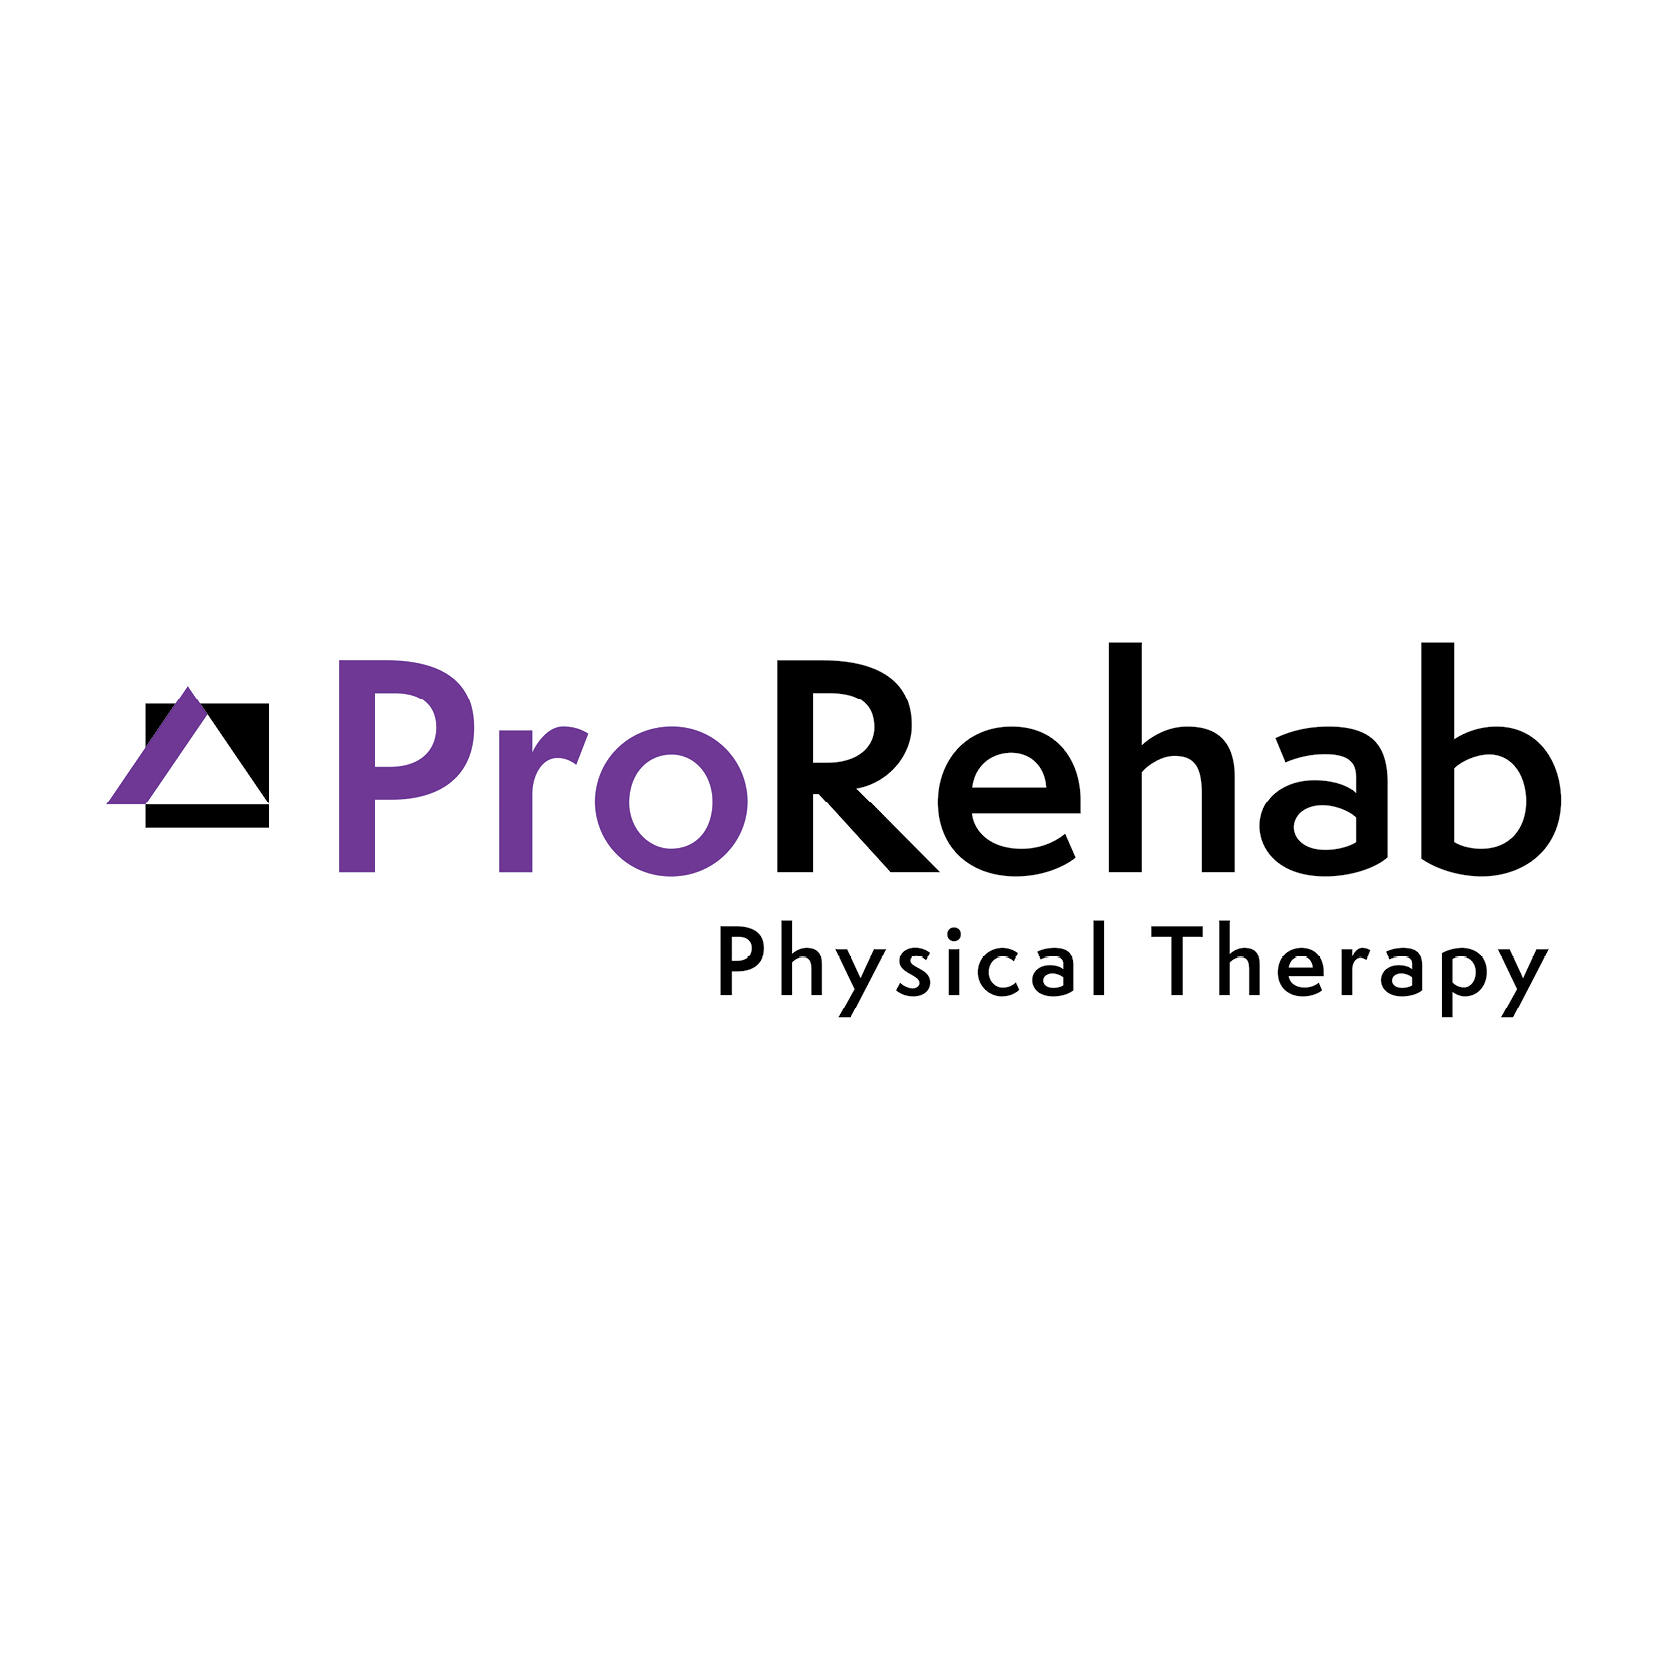 ProRehab Physical Therapy image 2